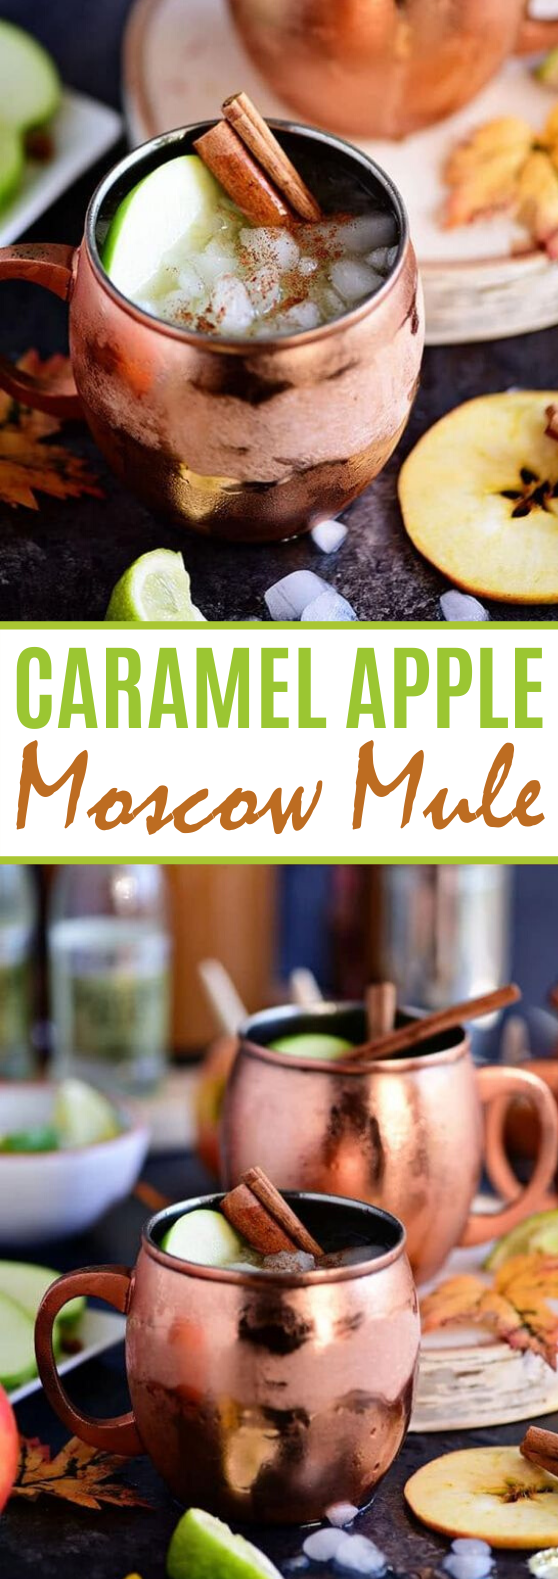 Caramel Apple Moscow Mule #drinks #alcohol #cocktails #fall #recipe